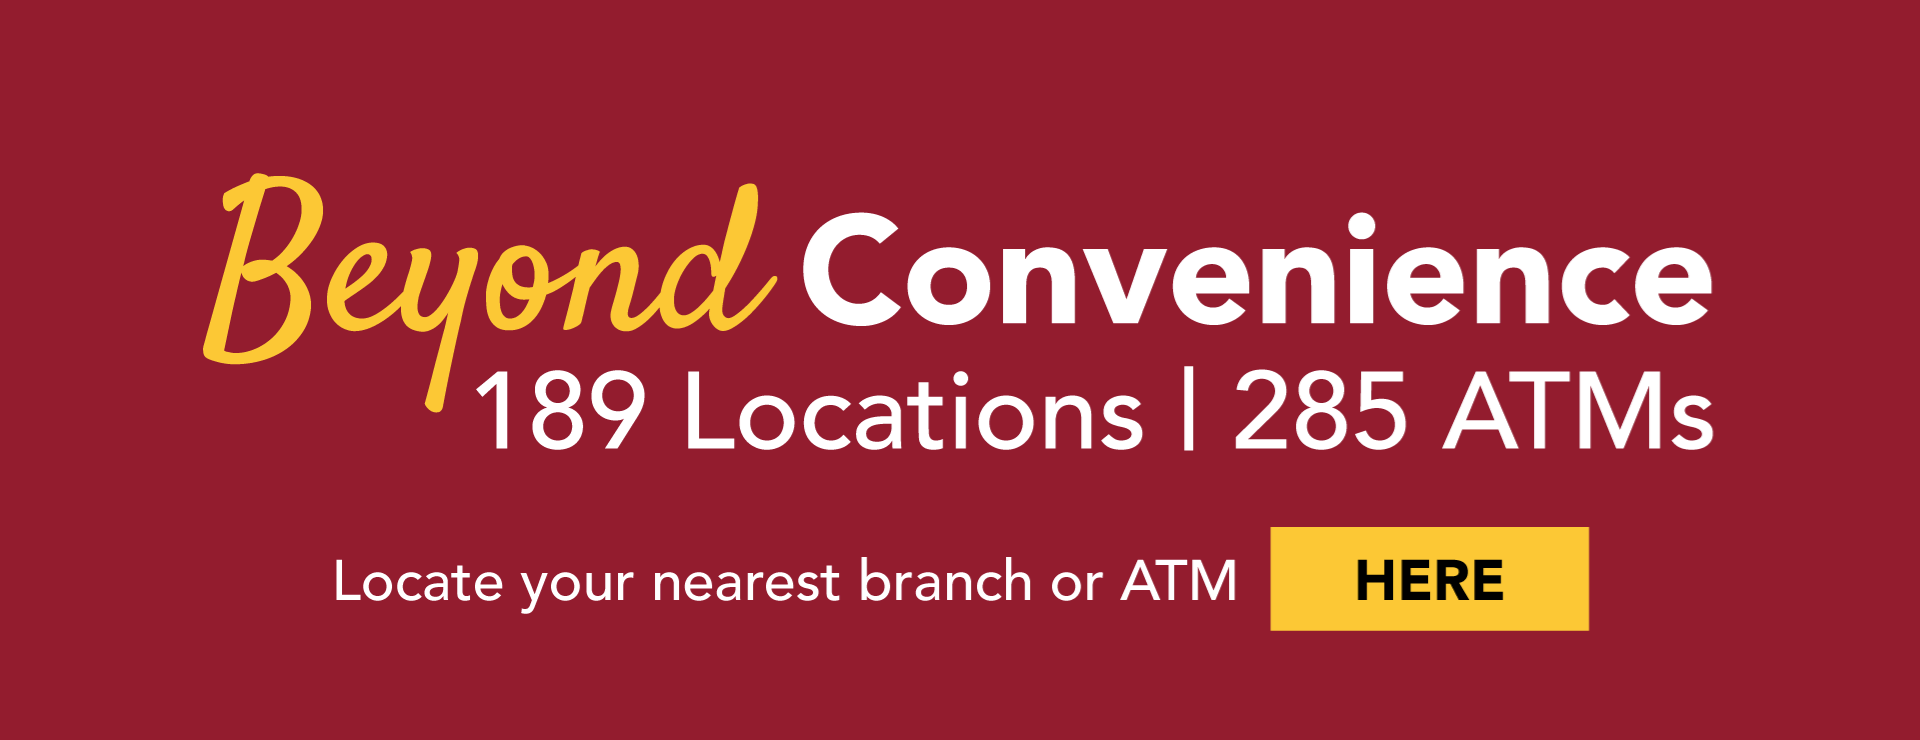 Beyond Convenience - ATMs & Branches